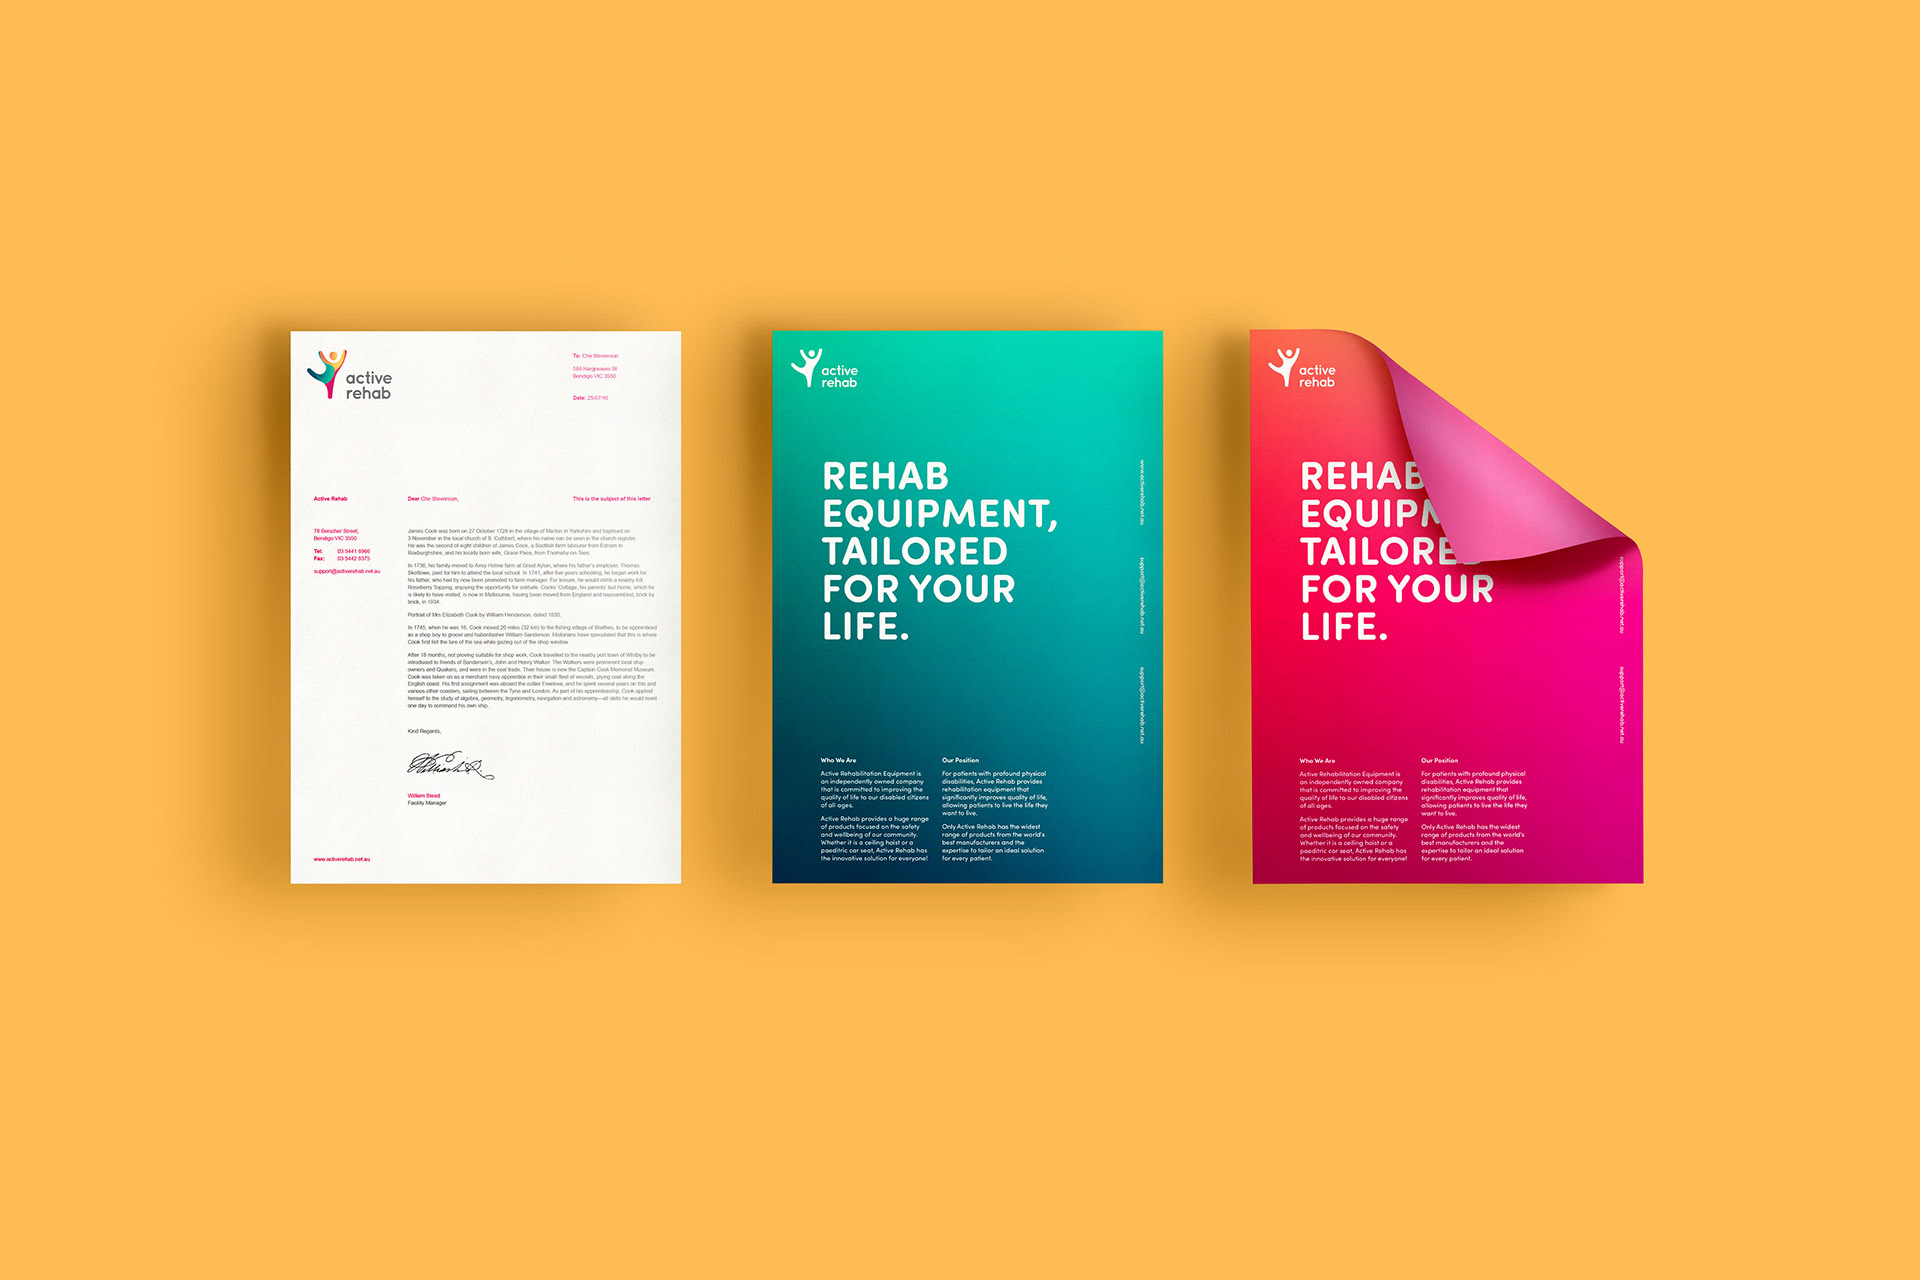 Active Rehab Brand Style Guide Stationery Design